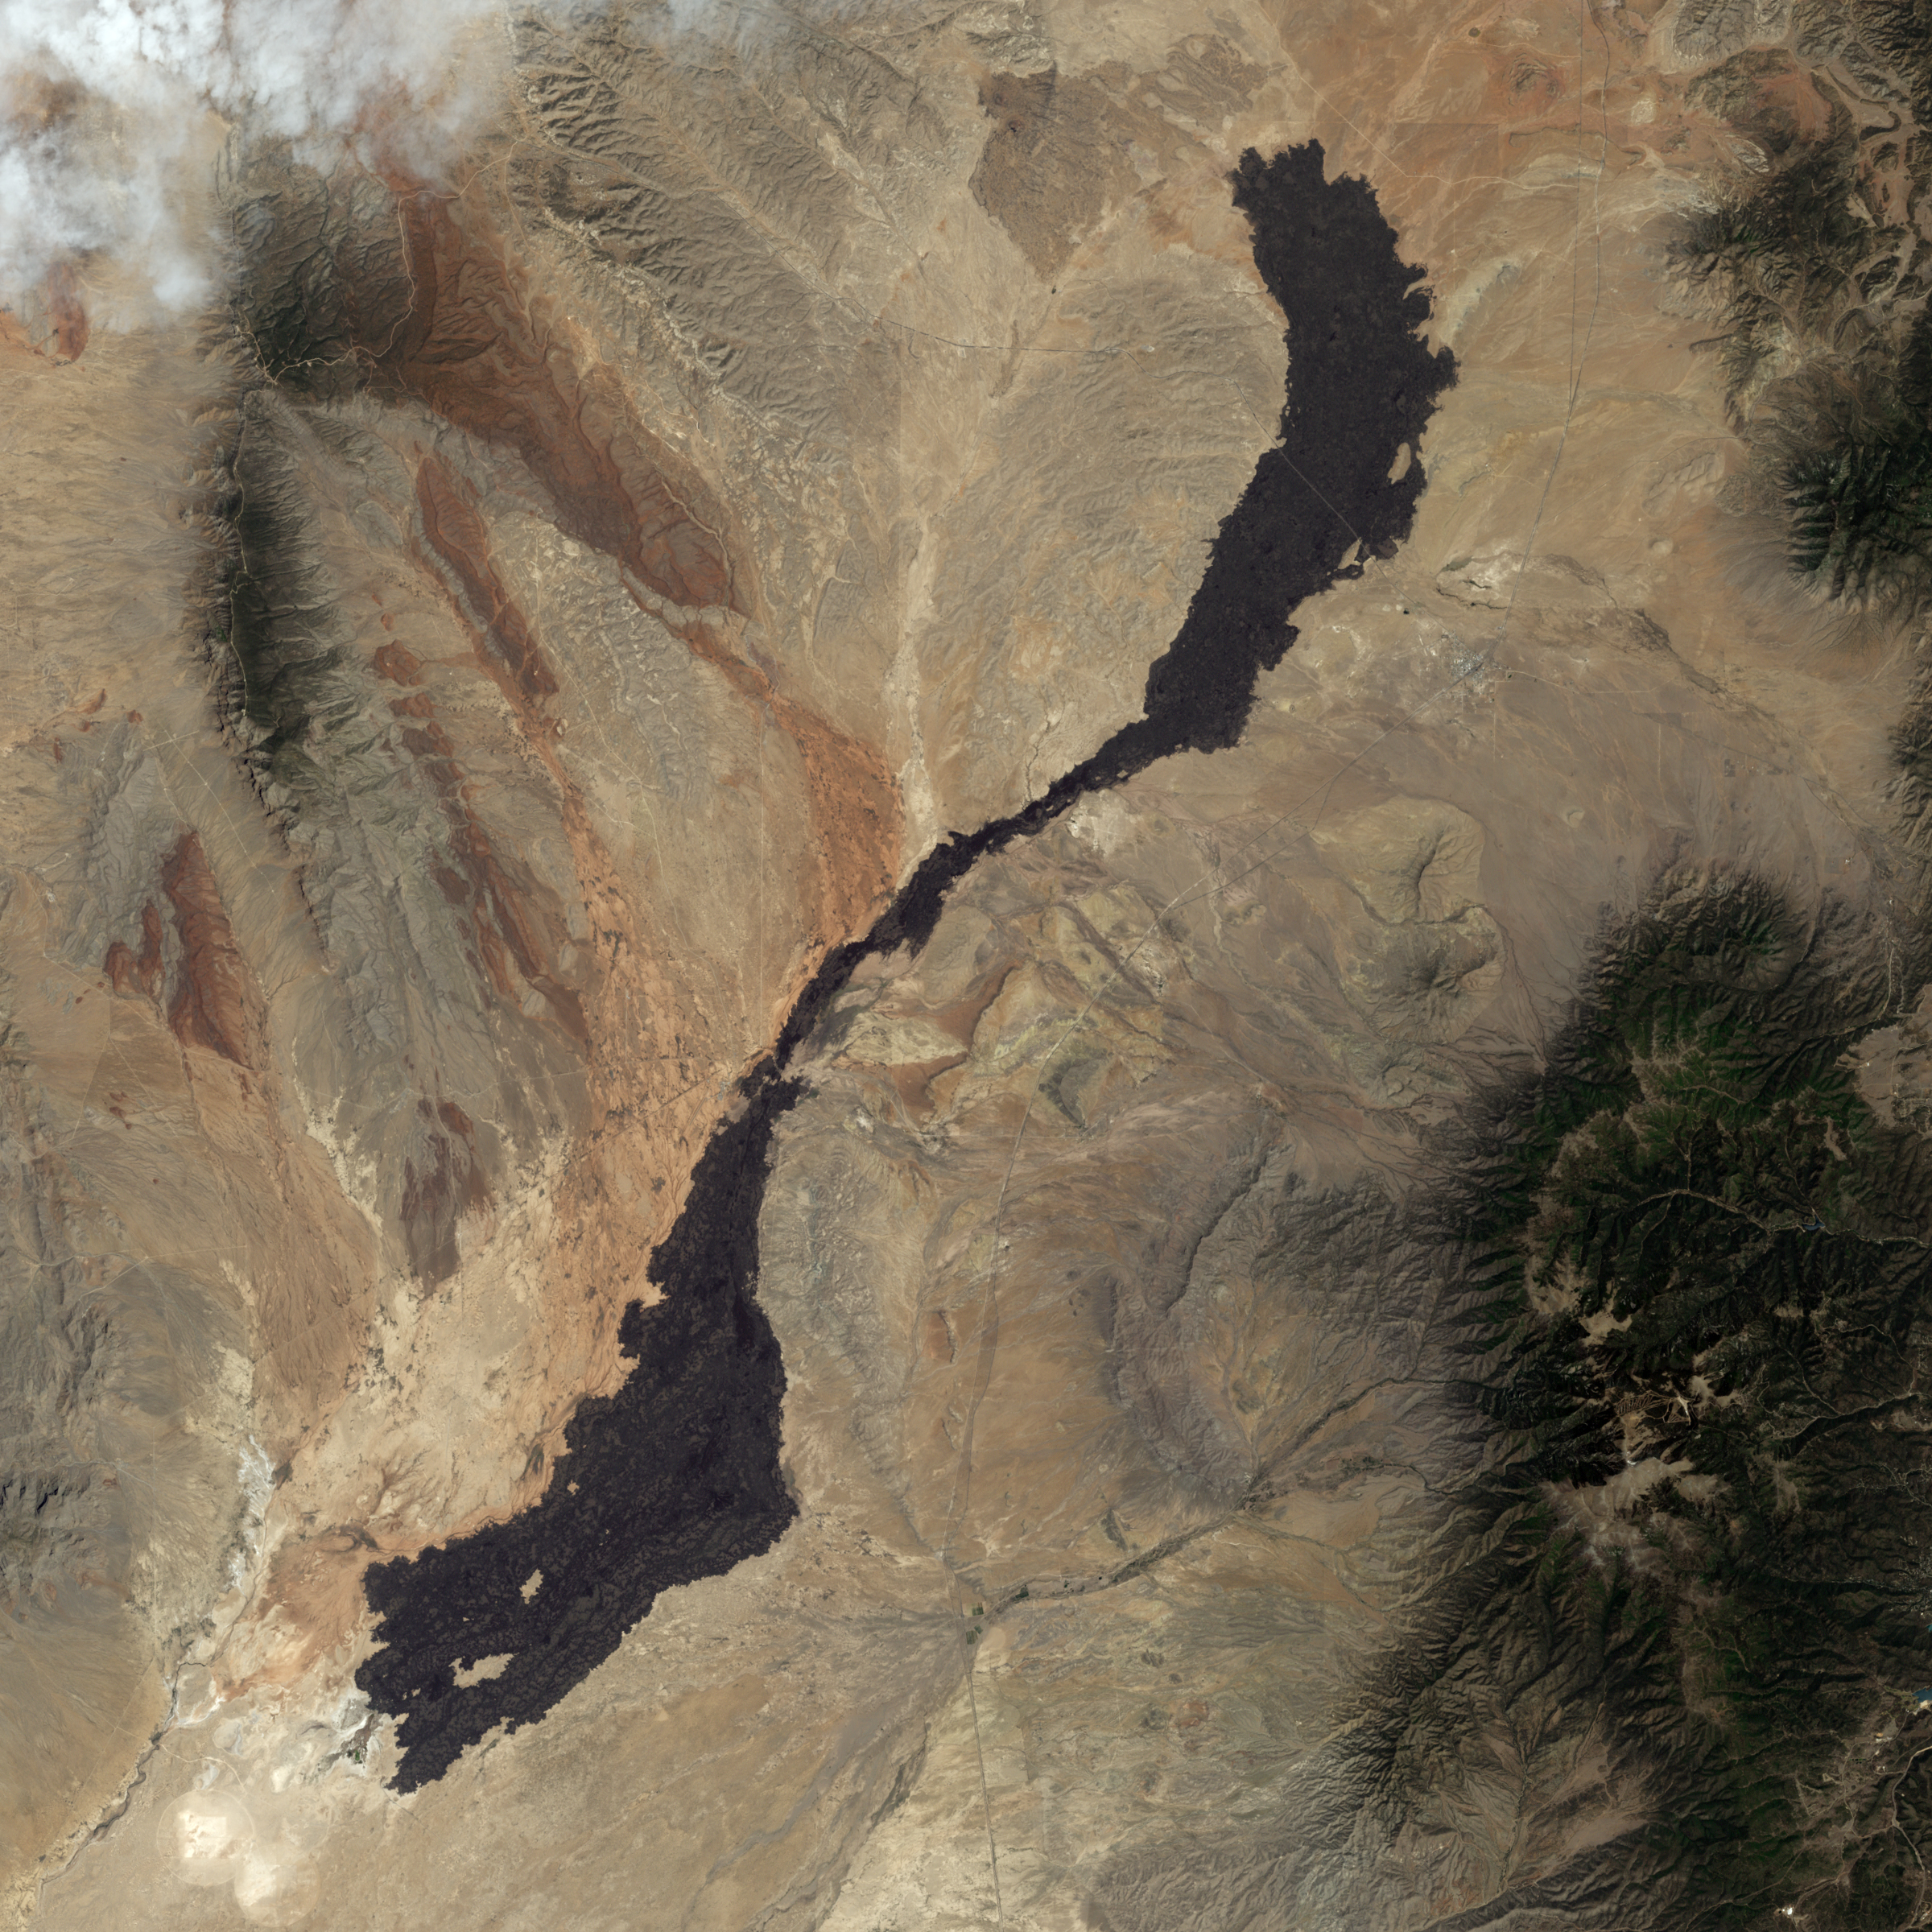 http://upload.wikimedia.org/wikipedia/commons/1/1b/Carrizozo_Lava_Flow.jpg